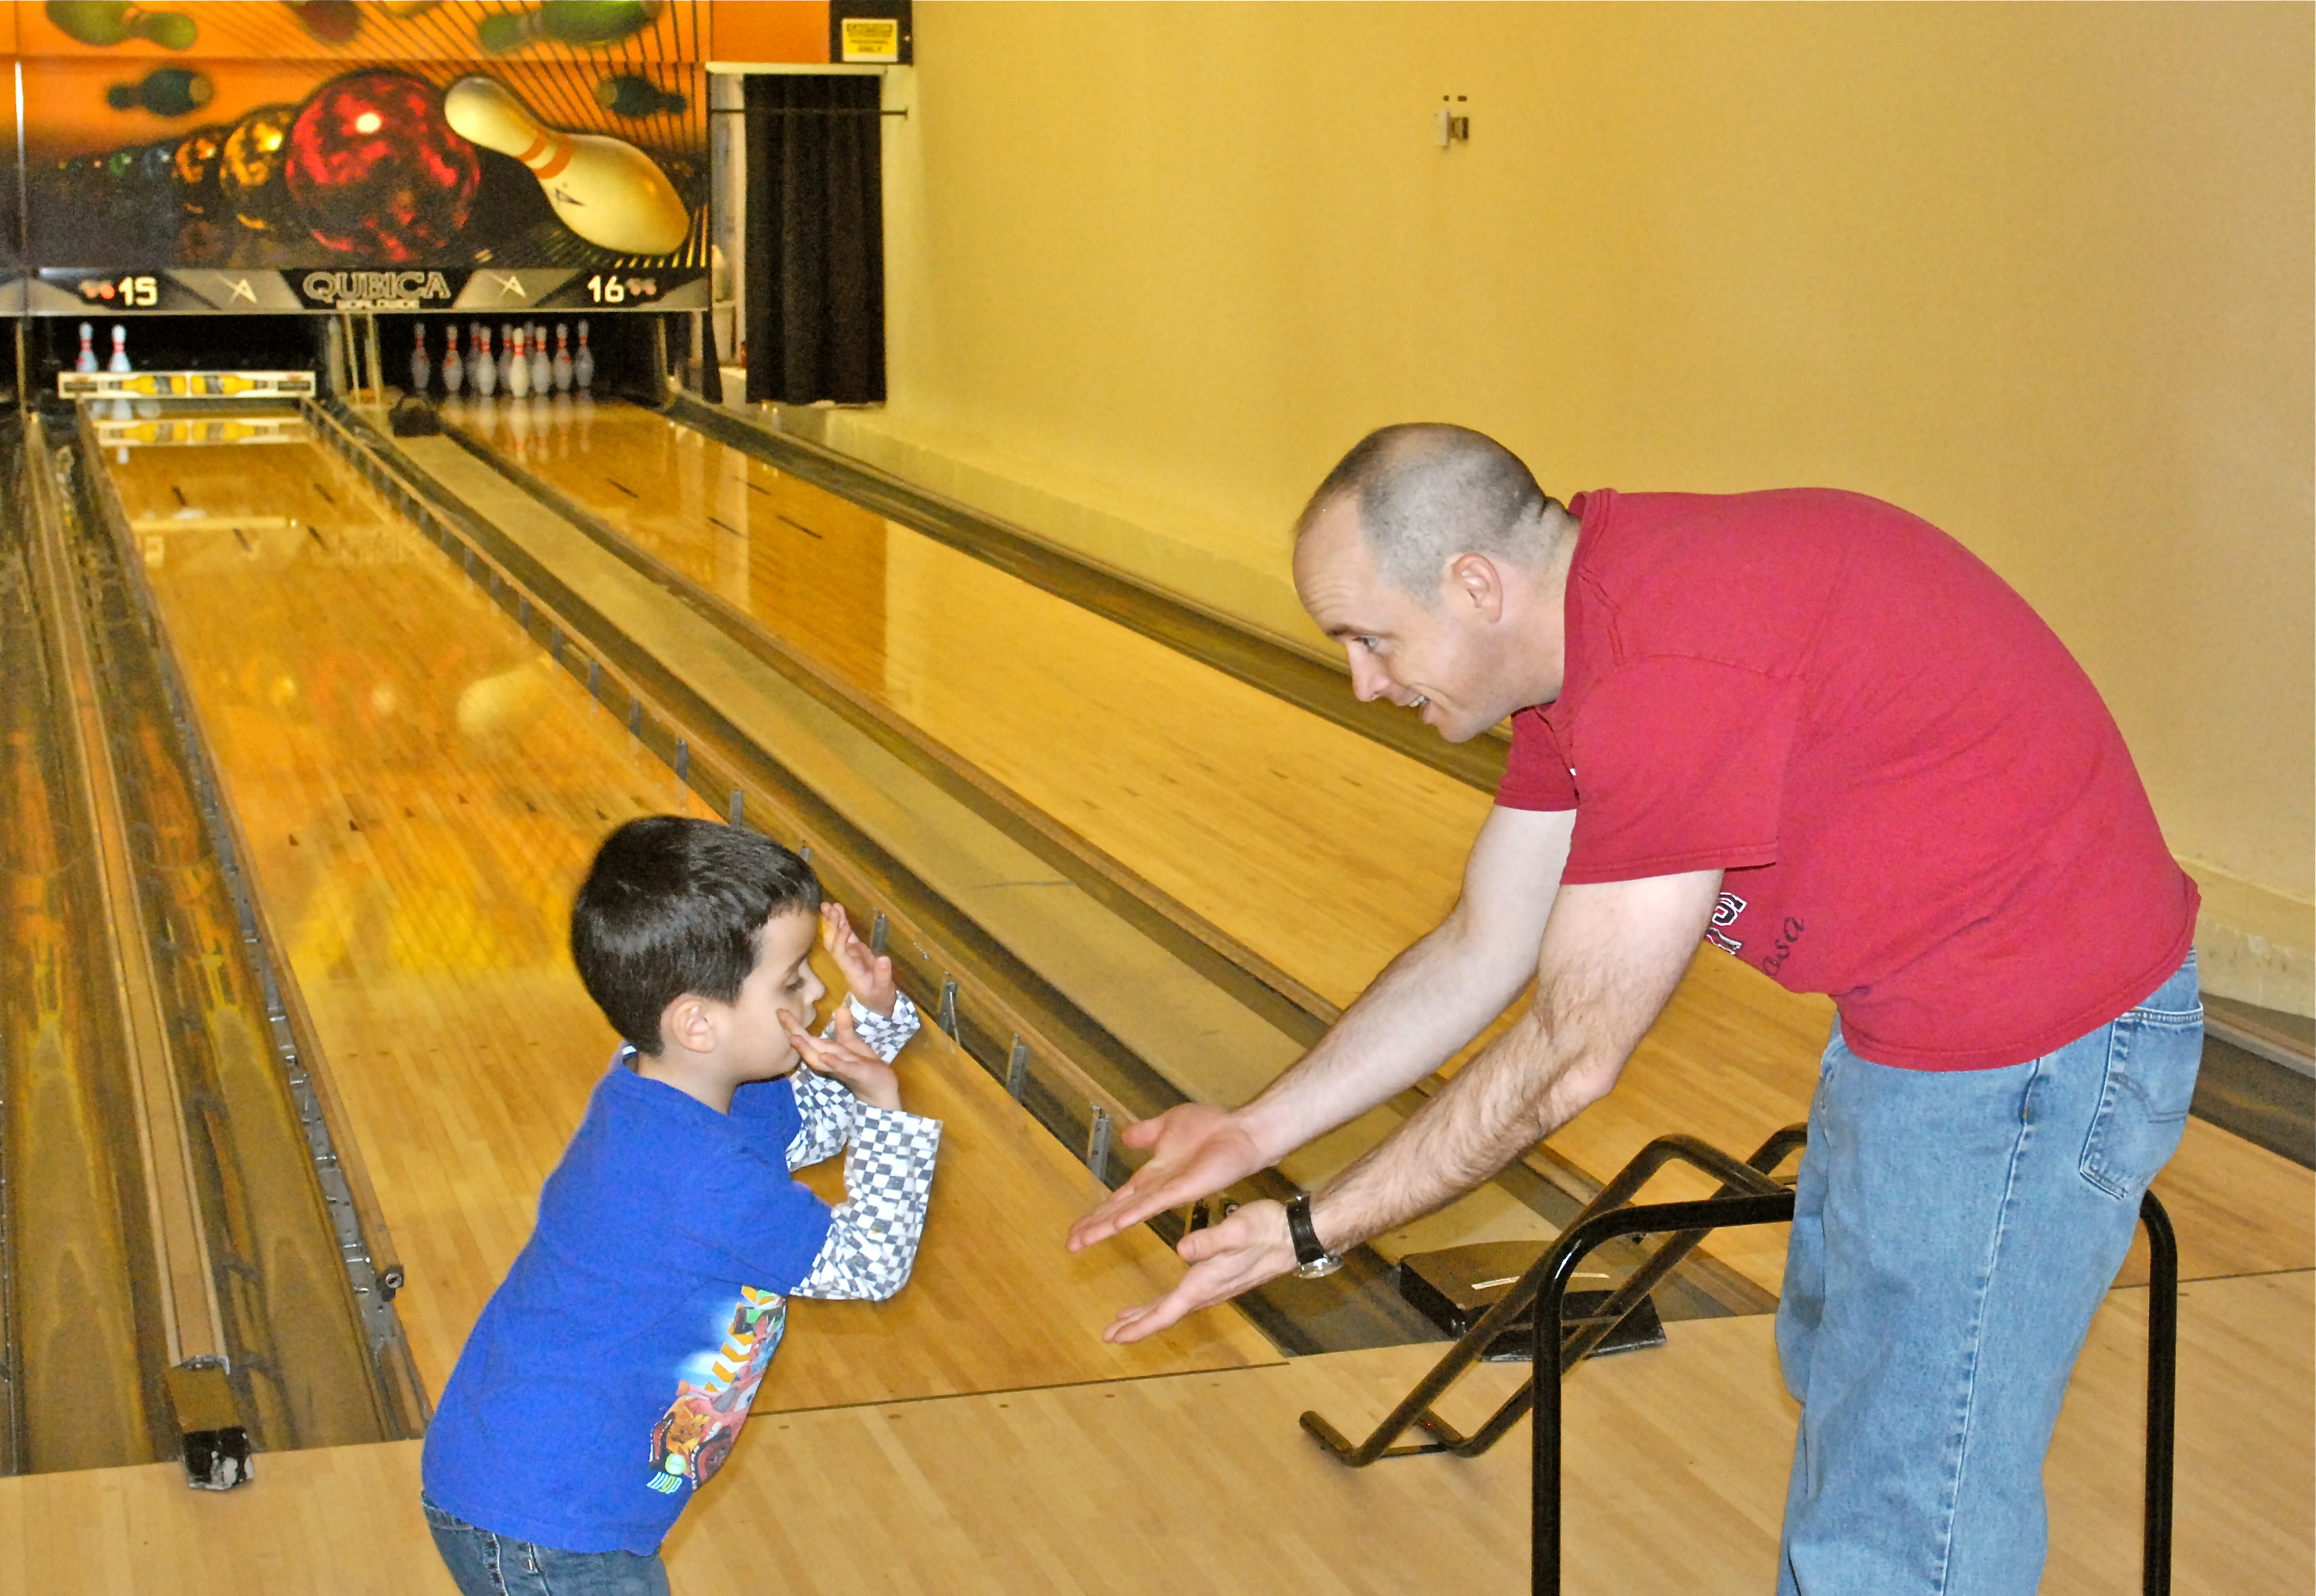 Man and boy high-fiving each other (Strike Zone Bowling Center, Camp Humphreys)